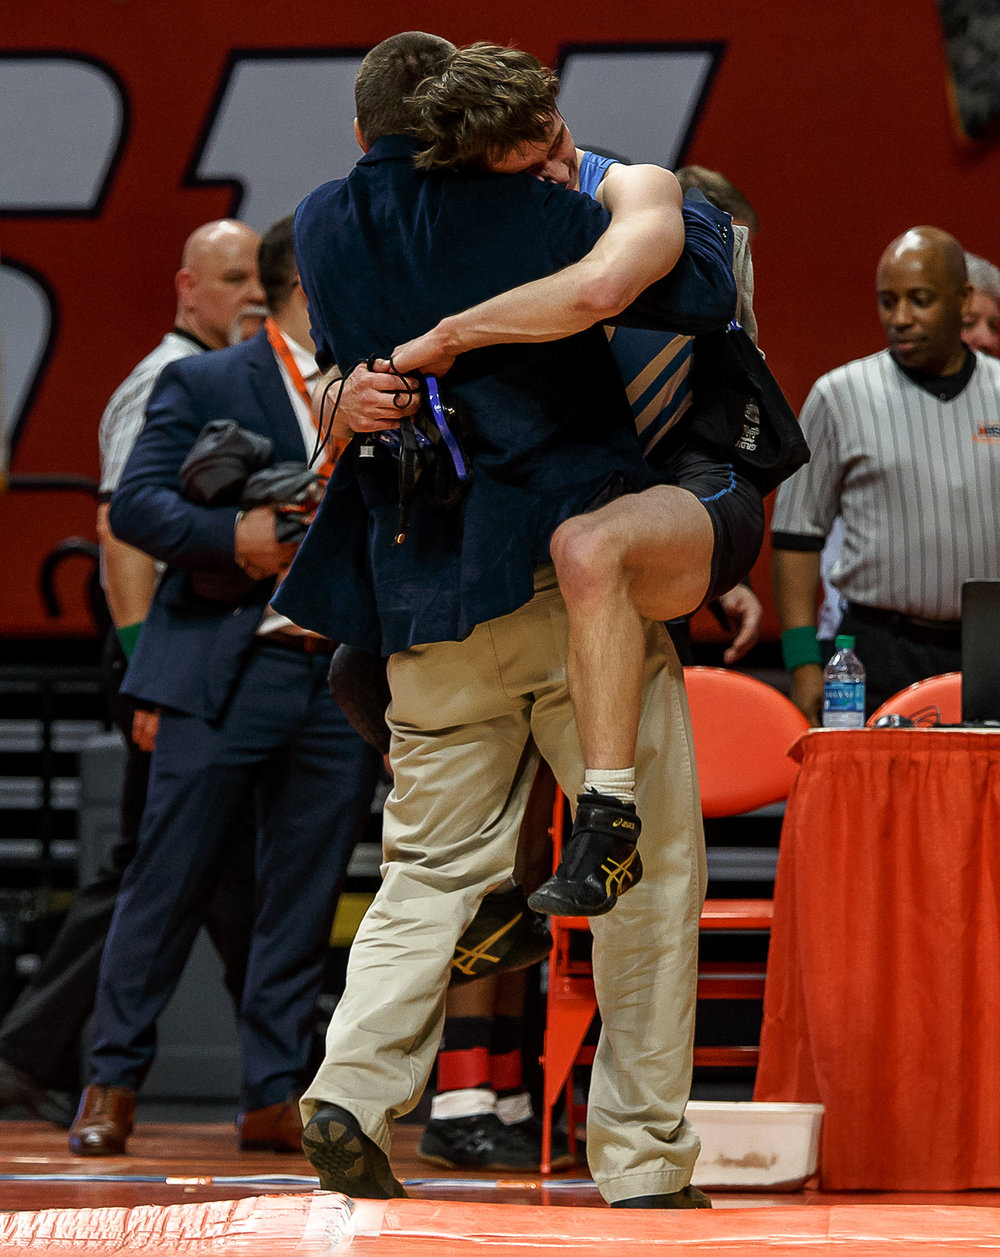 Petersburg PORTA's Trey Hild jumps into the arms of his father Davey Hild after defeating Quincy Notre Dame's Zach Haley during the IHSA Class 1A State Wrestling Tournament 145-pound championship match at the State Farm Center, Saturday, Feb. 17, 2018, in Champaign, Ill. [Justin L. Fowler/The State Journal-Register]